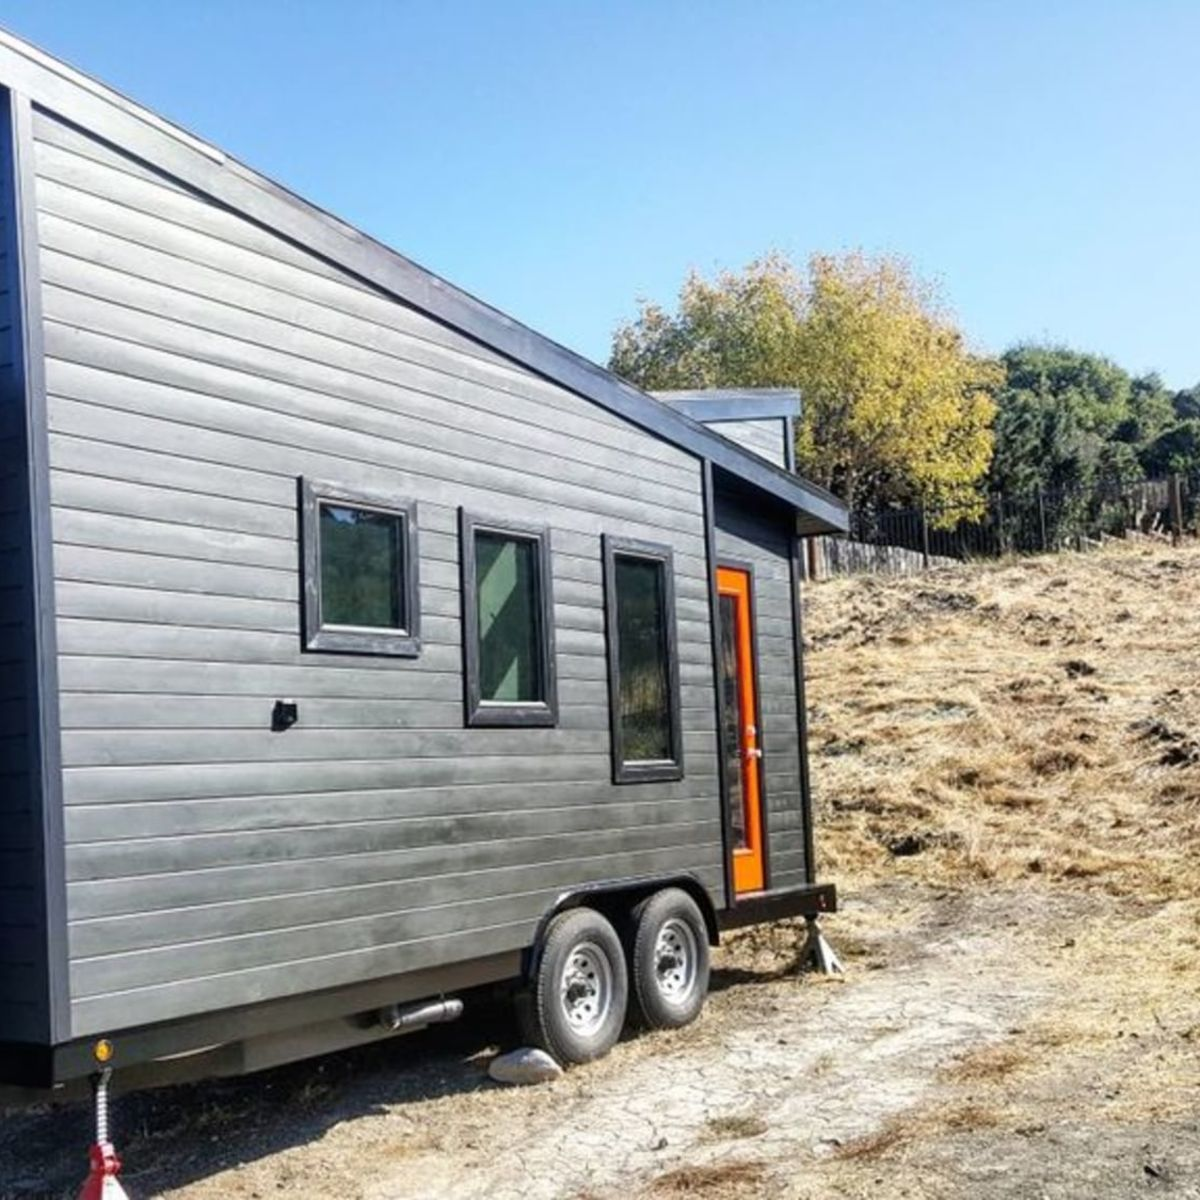 Modern Brand New Tiny Home For Sale Tiny House For Sale